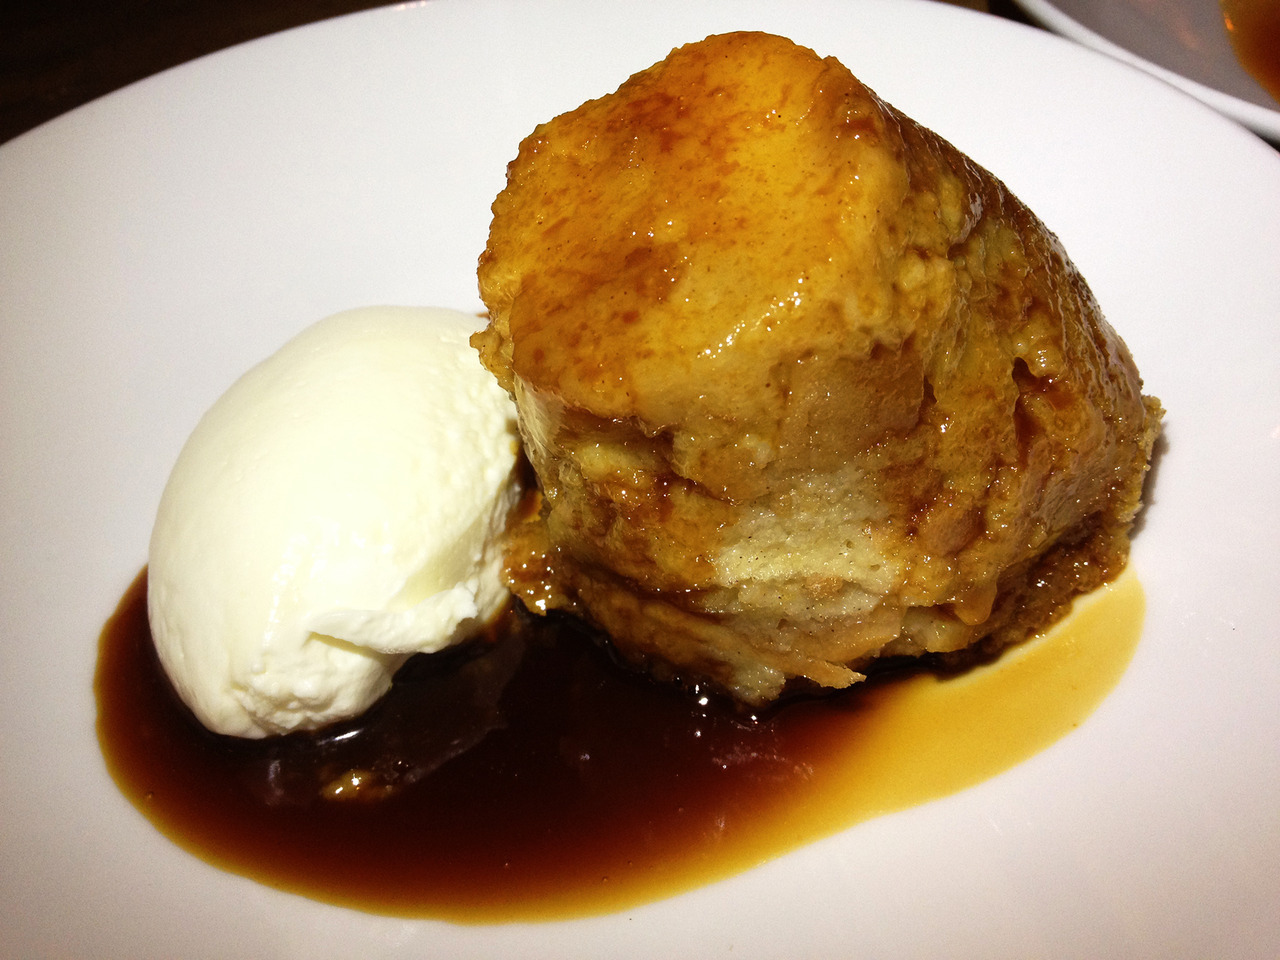 "AHHHHHHHHHHHHHHHHH bread pudding! It's my kryptonite, I can't NOT order it whenever I see it on a menu. Sure giving in and eating the entire thing will make my zipper embed itself into my lower tummy creating a Frankenstein-like scar when I take them off later that night, but I'll gaze at my protruding belly and smile when I remember the caramel greatness. Maybe I'll even grab and jiggle it a la Honey Boo Boo and say some sassy one liner like ""Everybody a little bit fat-ass."" The gang (Gastrodamus, Black Angus and #ogccpg) finished off dinner at Passion Fish with two desserts, I'm proud to show that the bread pudding was one of them. And may I add, one of the best I've had. I loved how they flame torched the shit out of the top creating a creme brulee style sugar crackling that made me wish chicharrones came in caramel-bread instead of pork. -Braised Bombshell"